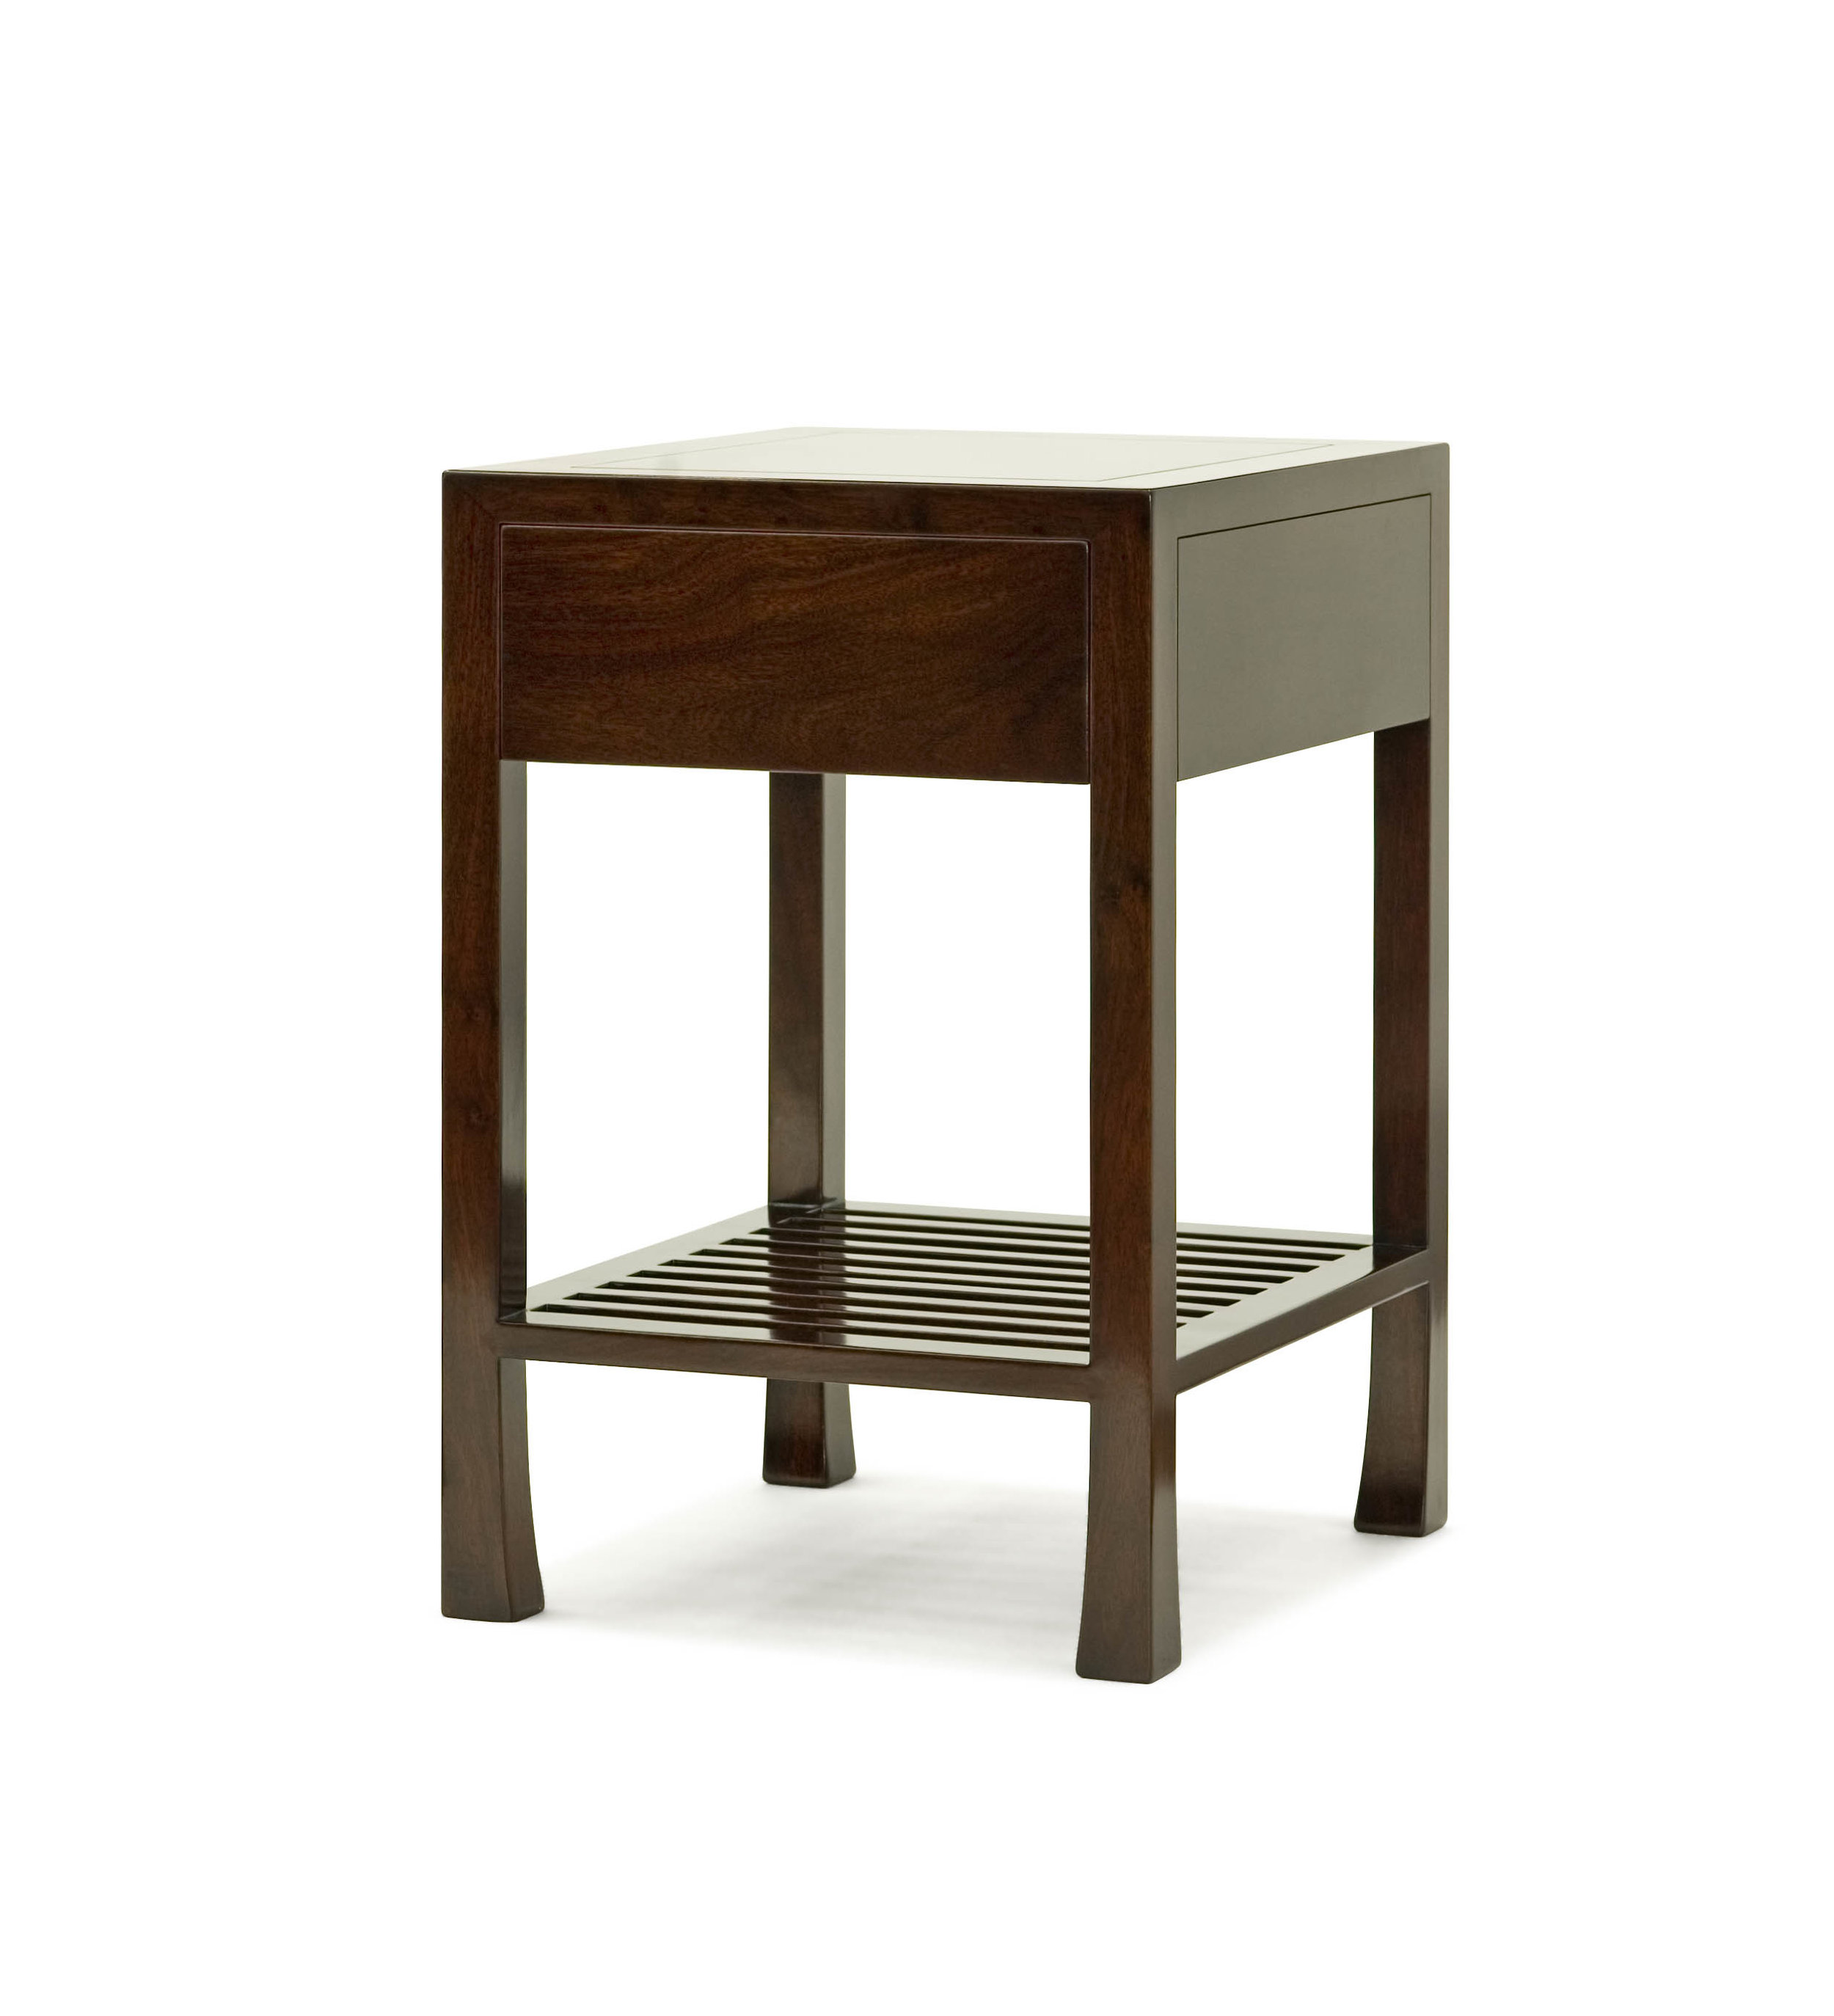 ....bespoke modern chinese furniture : bedside table..特别定制现代中式家具 : 床头台....